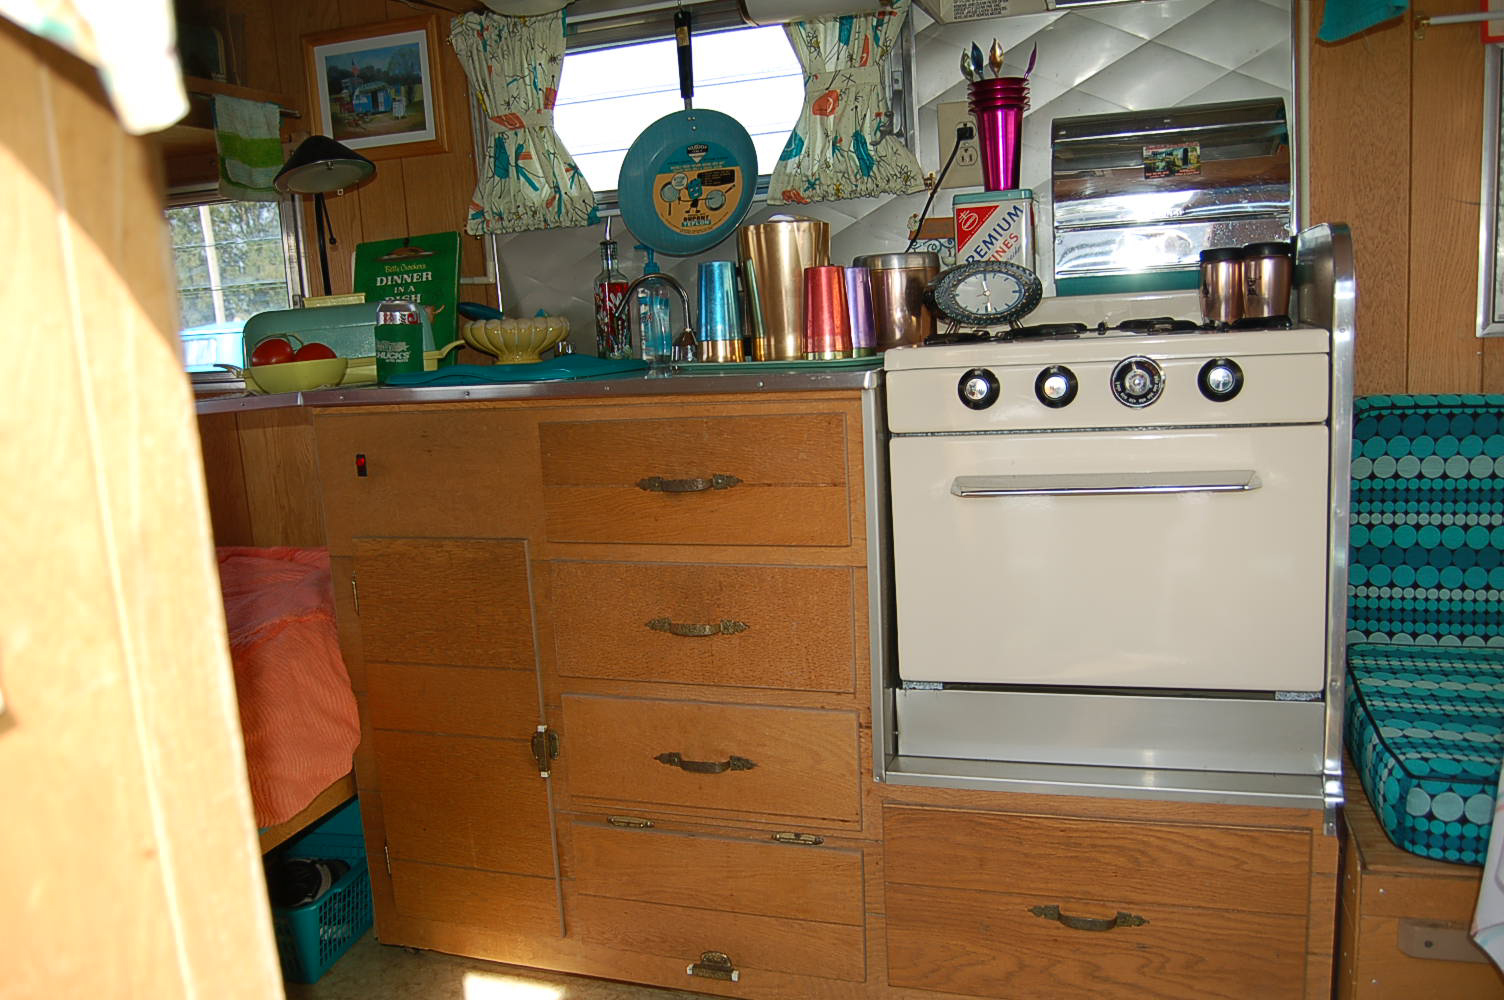 Picture Shows Restored Oven And Kitchen Countertop Cabinet In Vintage 1965 Aloha Trailer Travel